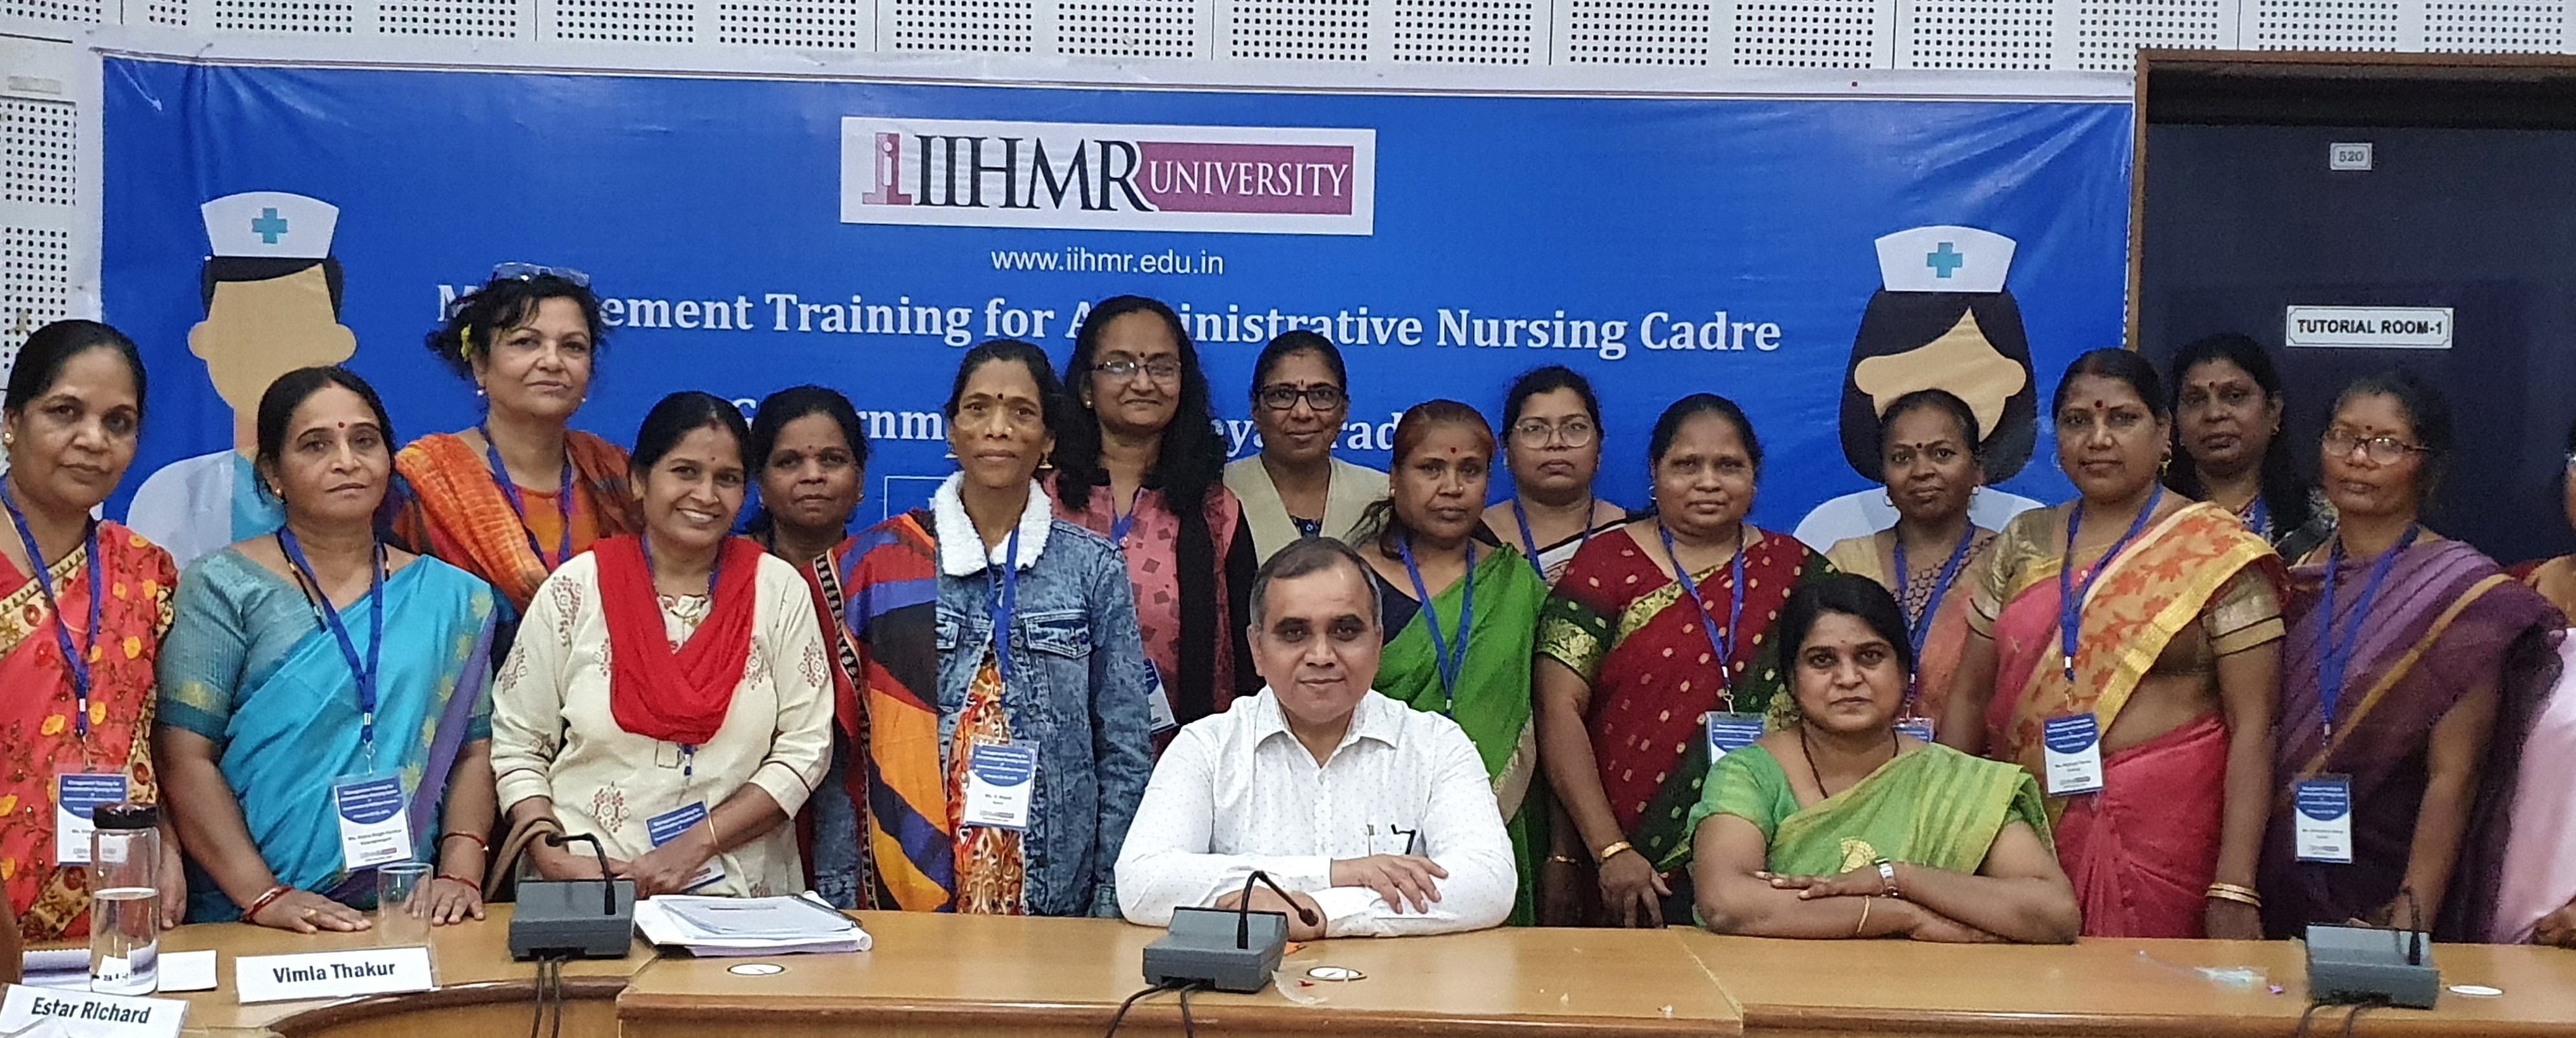 IIHMR University to train 100 Administrative Nursing Cadre for the Government of Madhya Pradesh